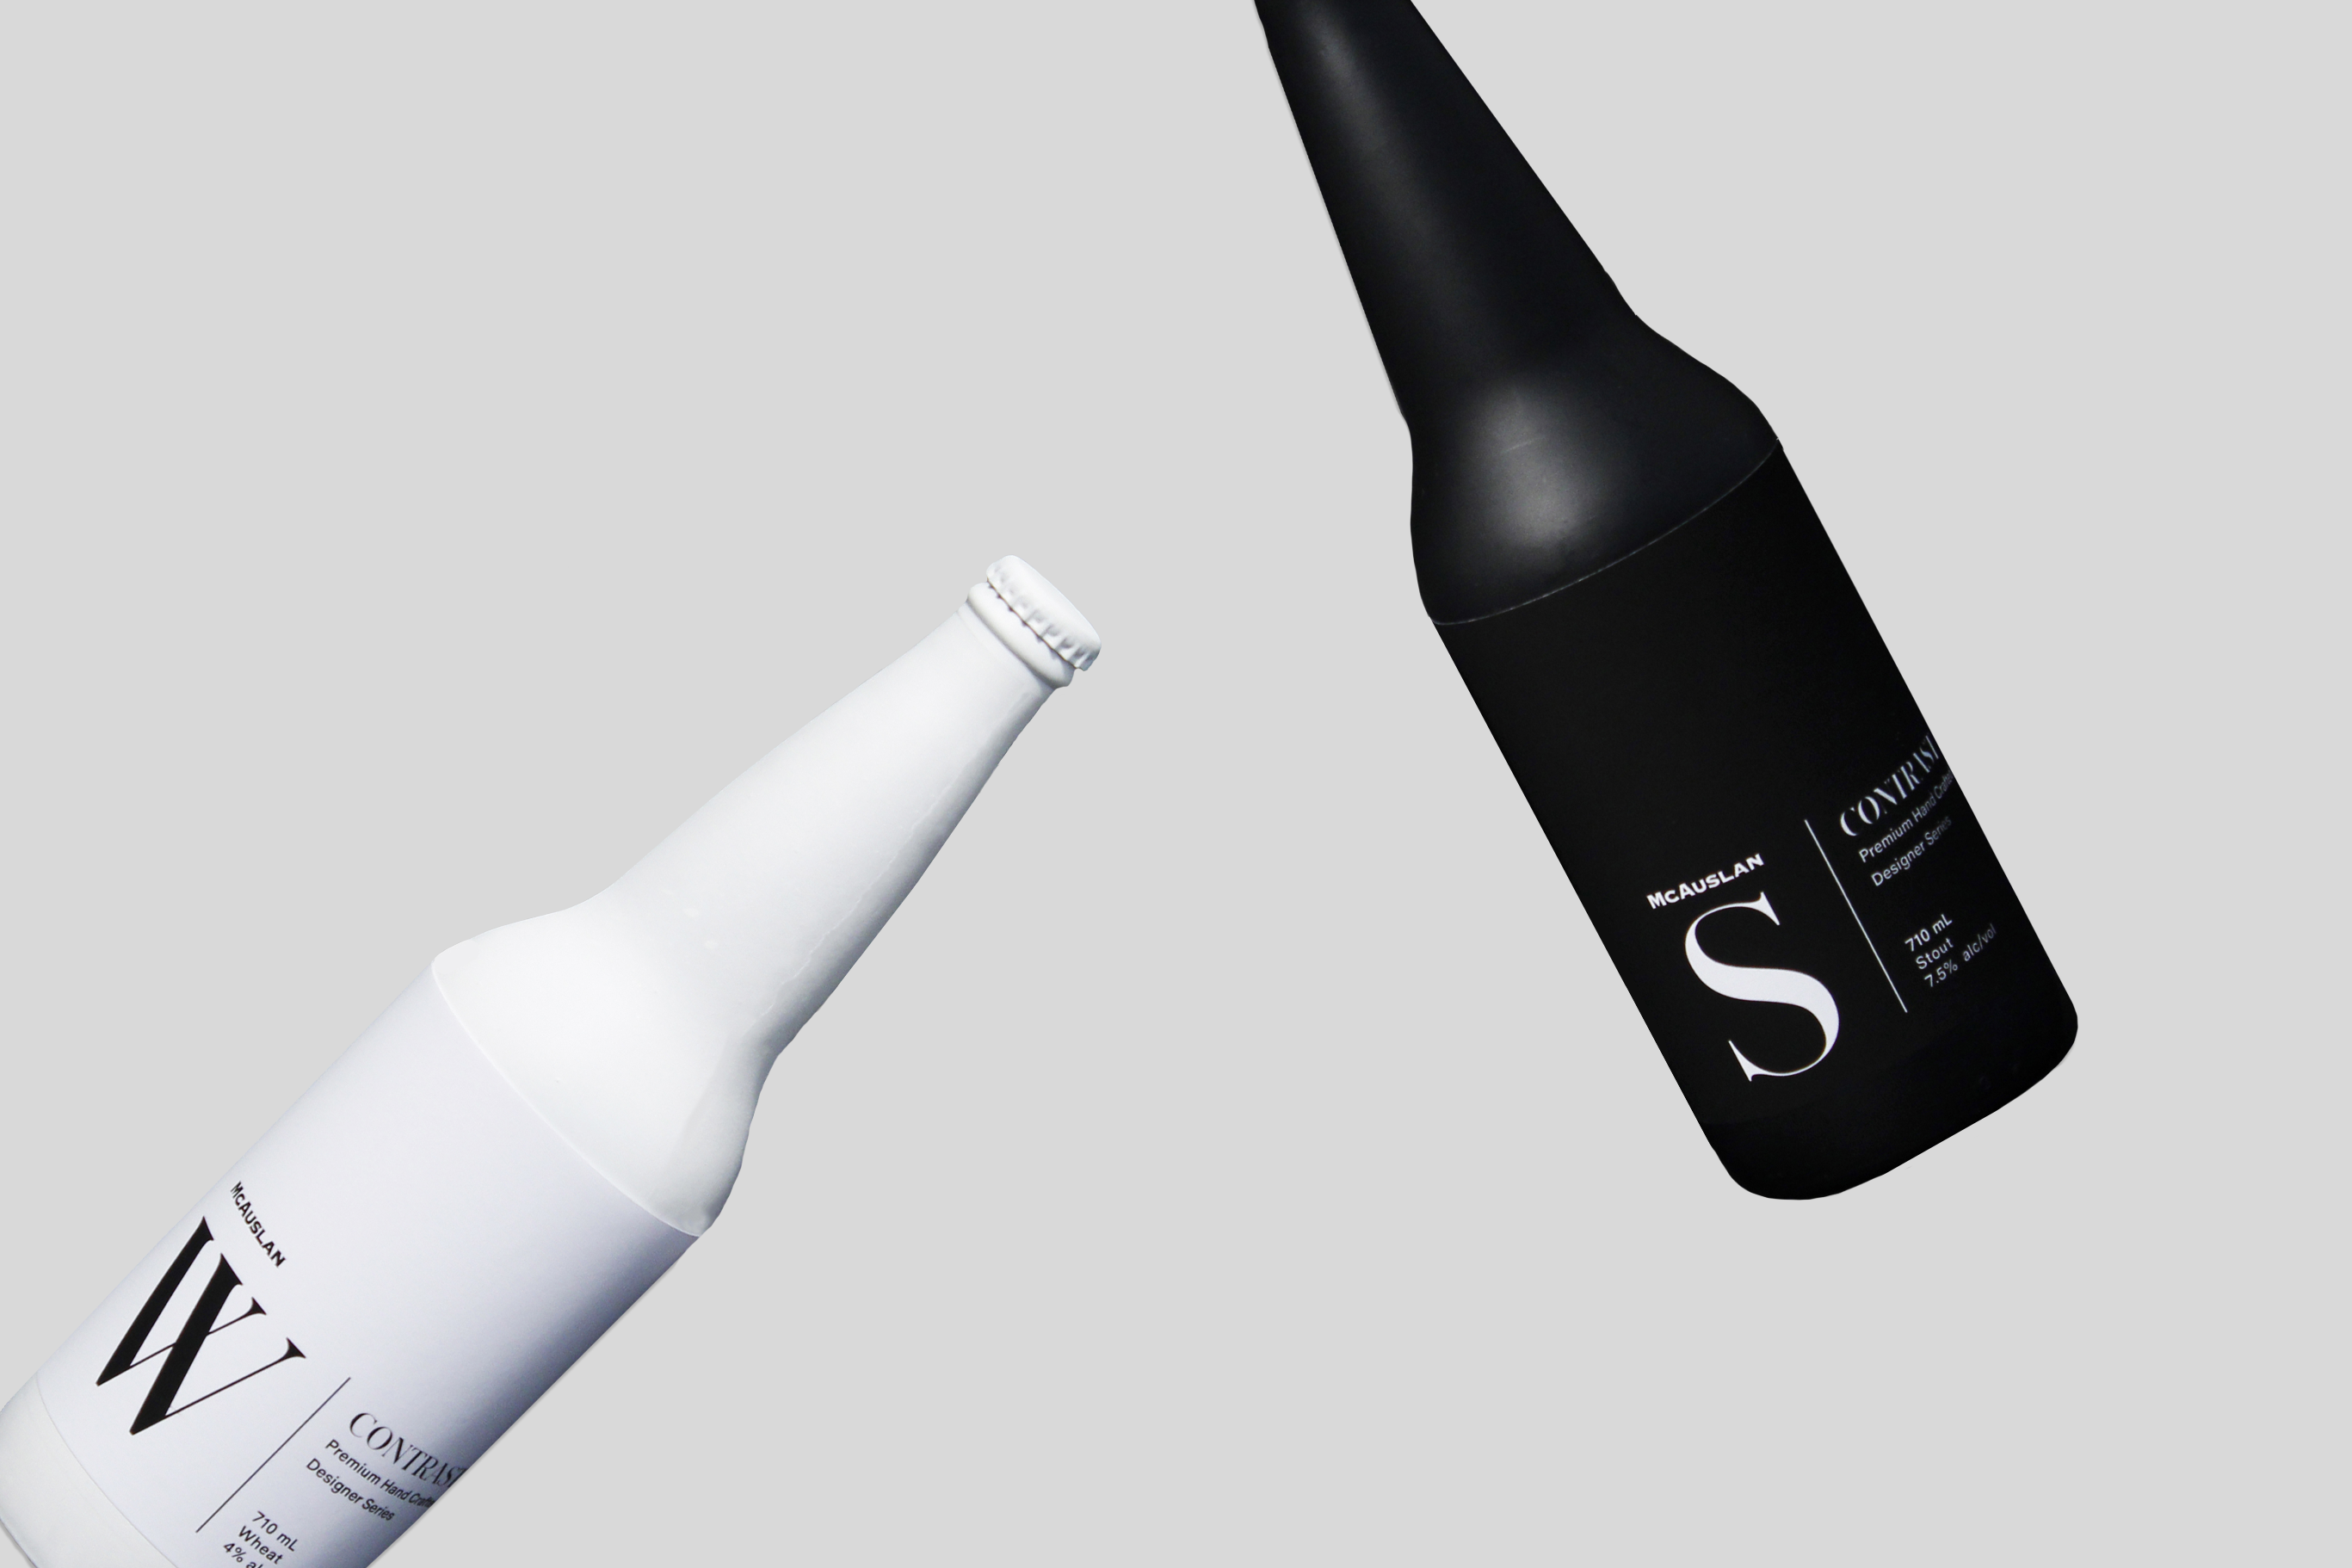 Contrast: Black and white bottle falling.